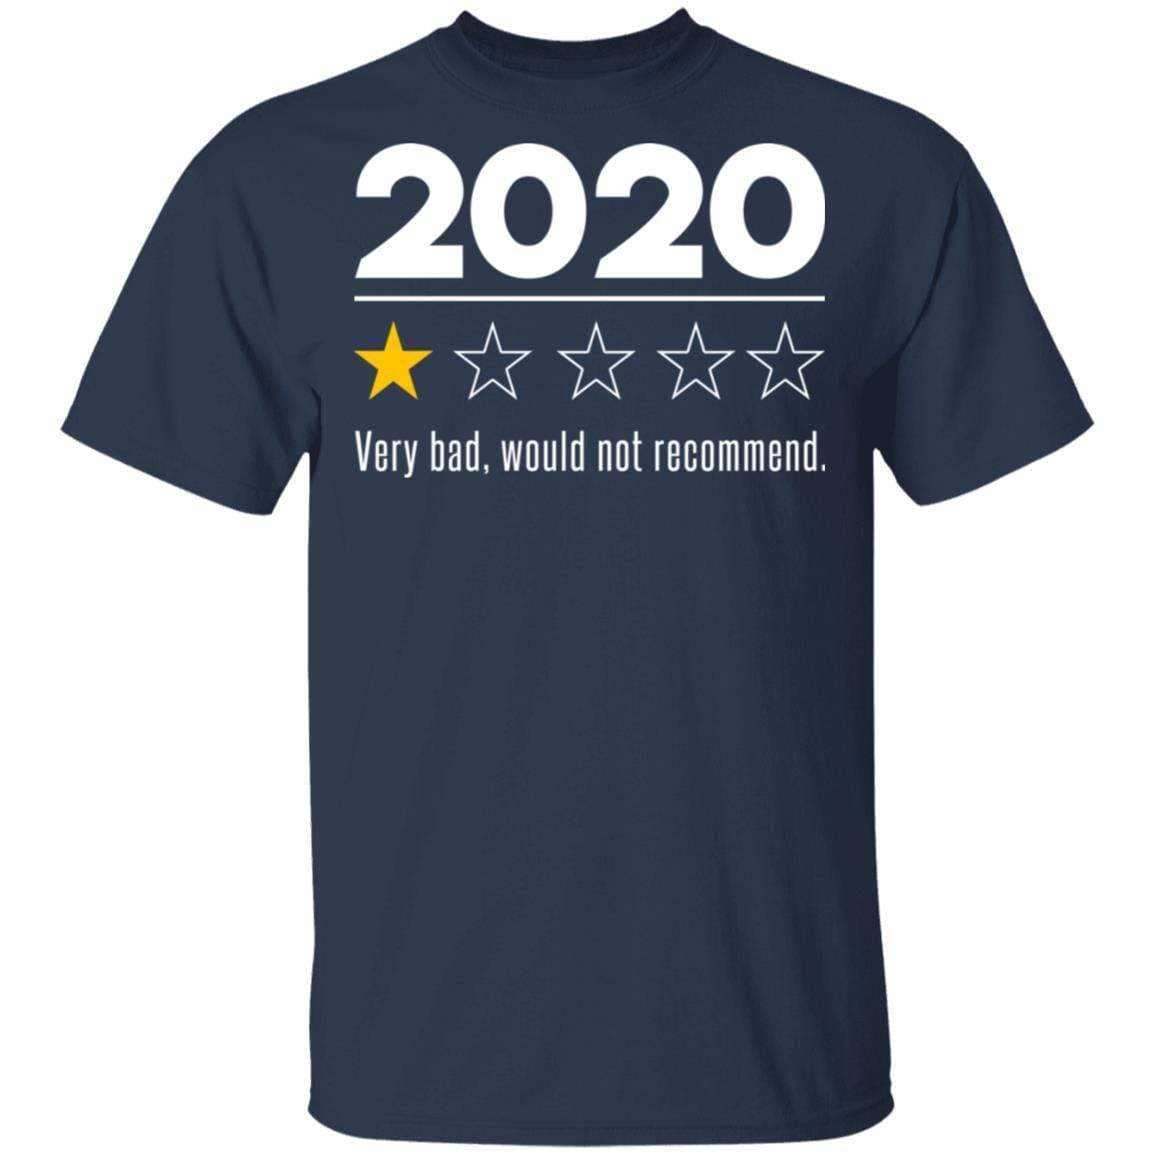 2020 This Year Very Bad Would Not Recommend T-Shirts, Hoodies 1049-9966-88282841-48248 - Tee Ript